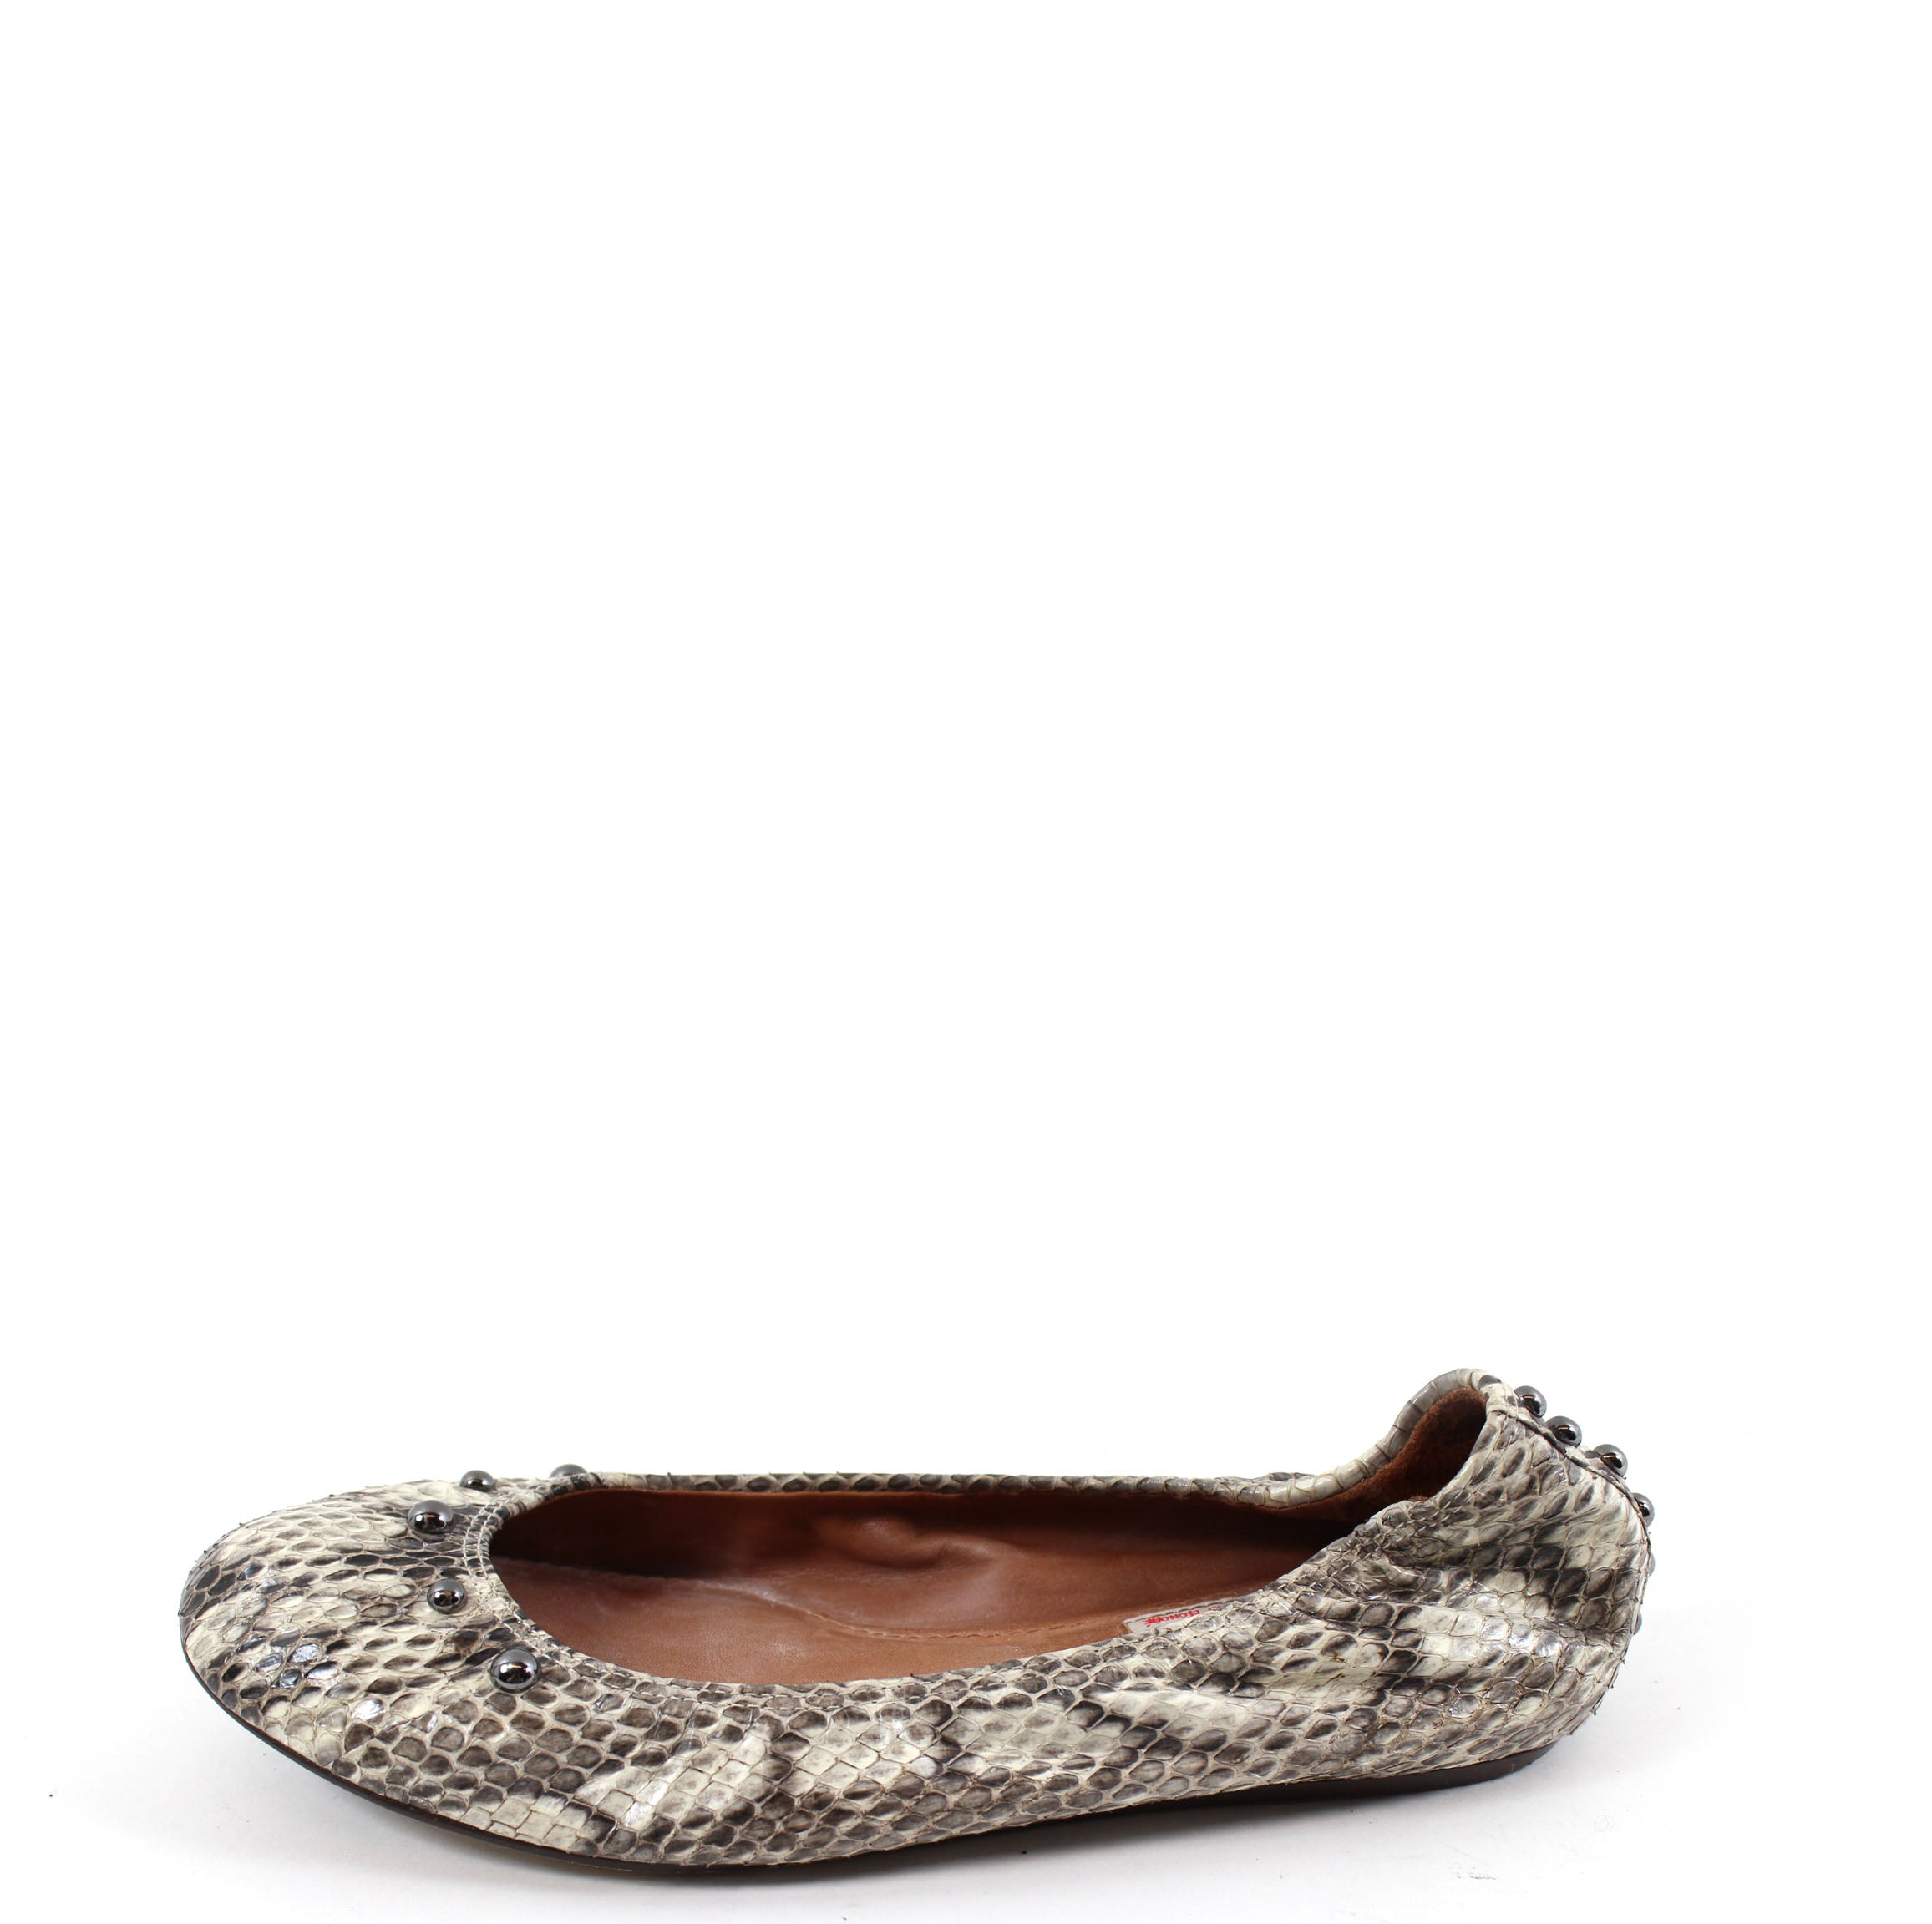 e1b30365b7c3 Lanvin Gray Shaded Snakeskin Ballet Flats (Size 37) – Encore Resale.com